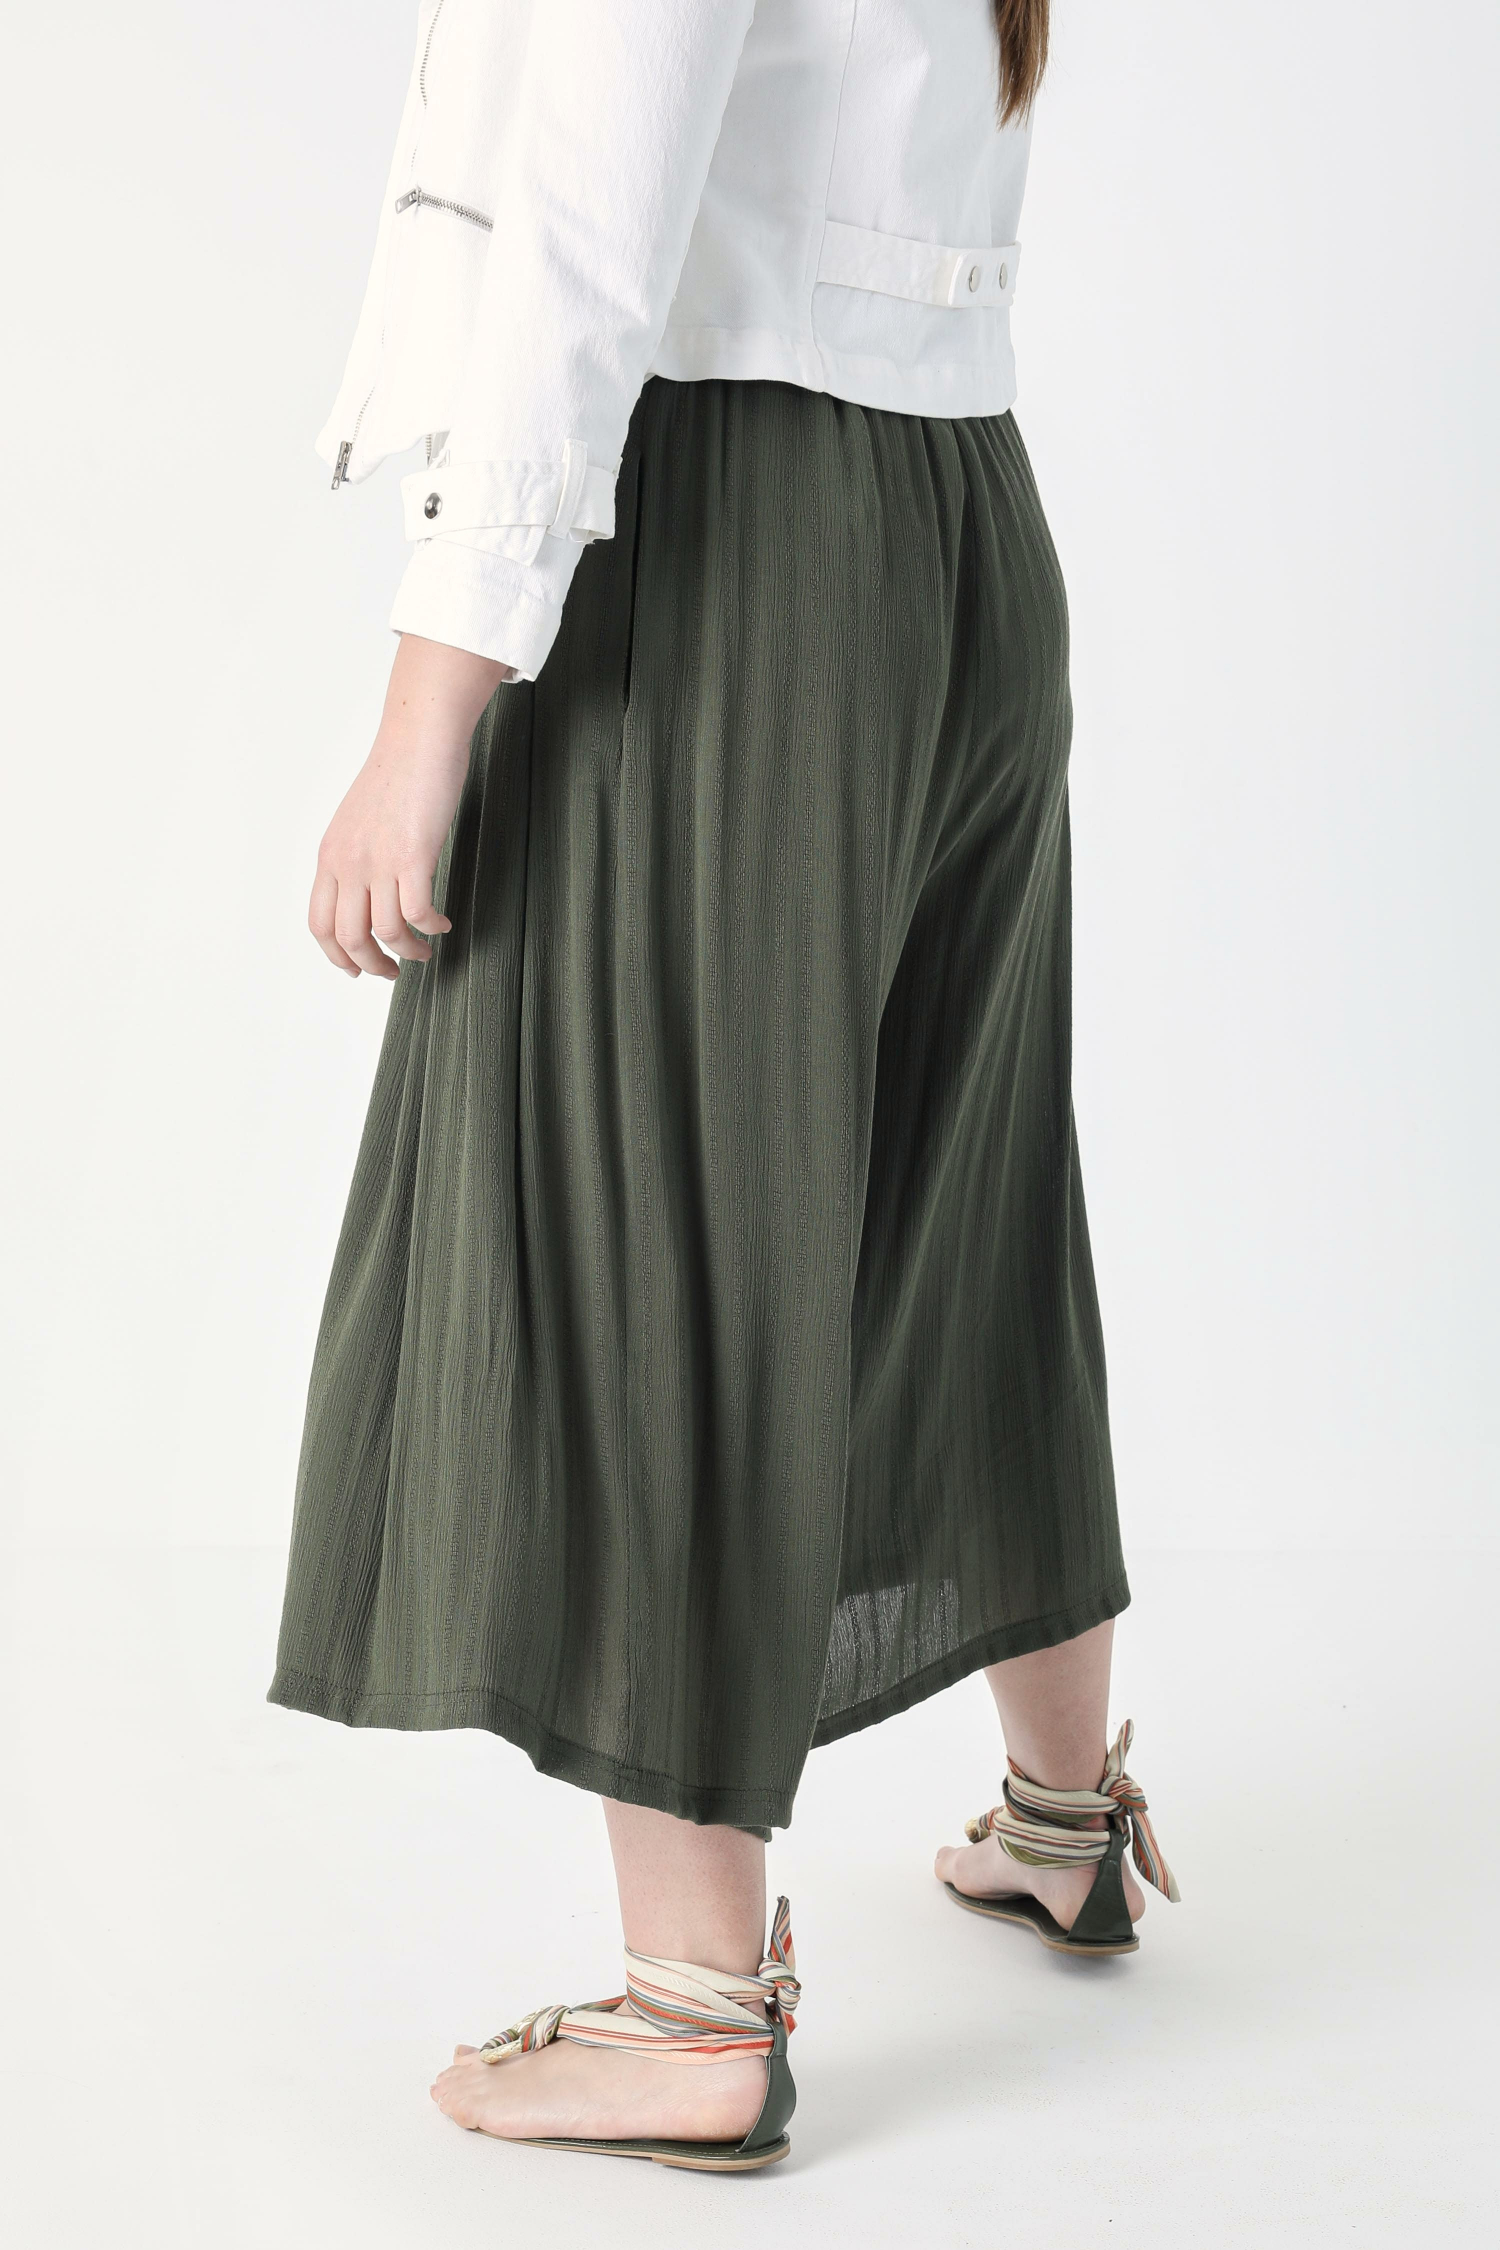 Panty skirt in striped effect viscose (shipping 5/10 April)